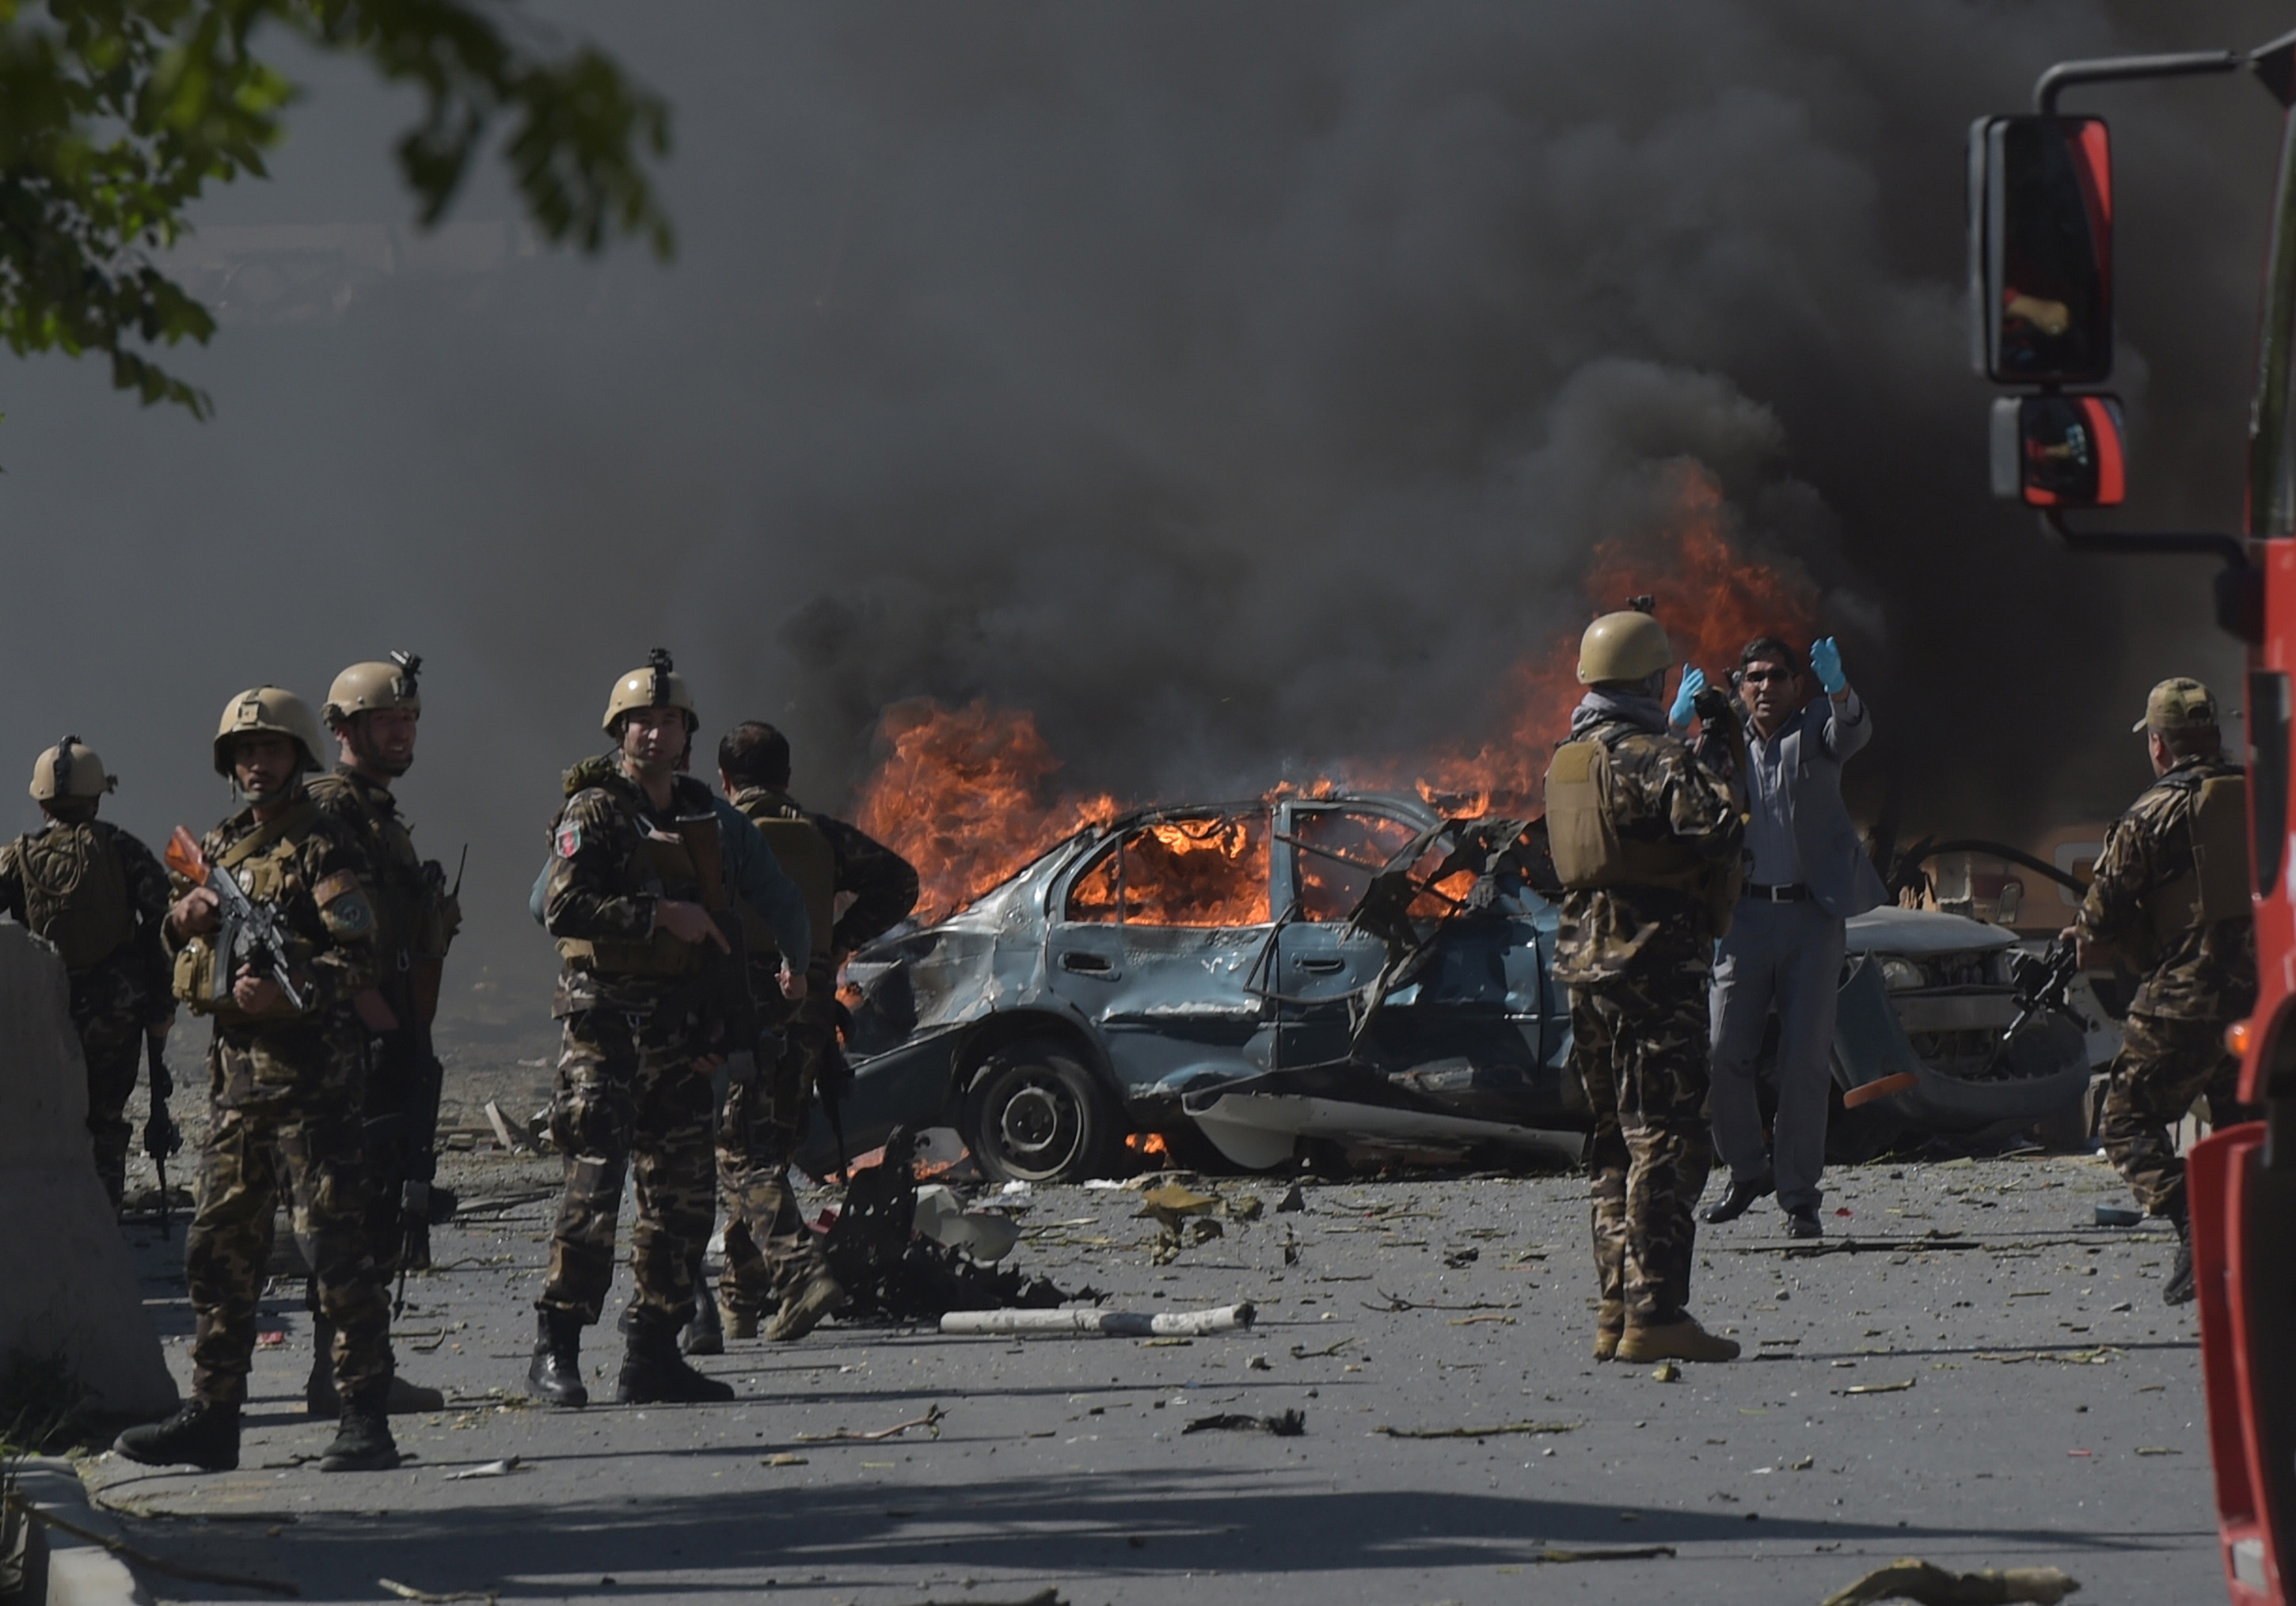 Kabul: Bombing in Afghanistan Kills at Least 80 | Time